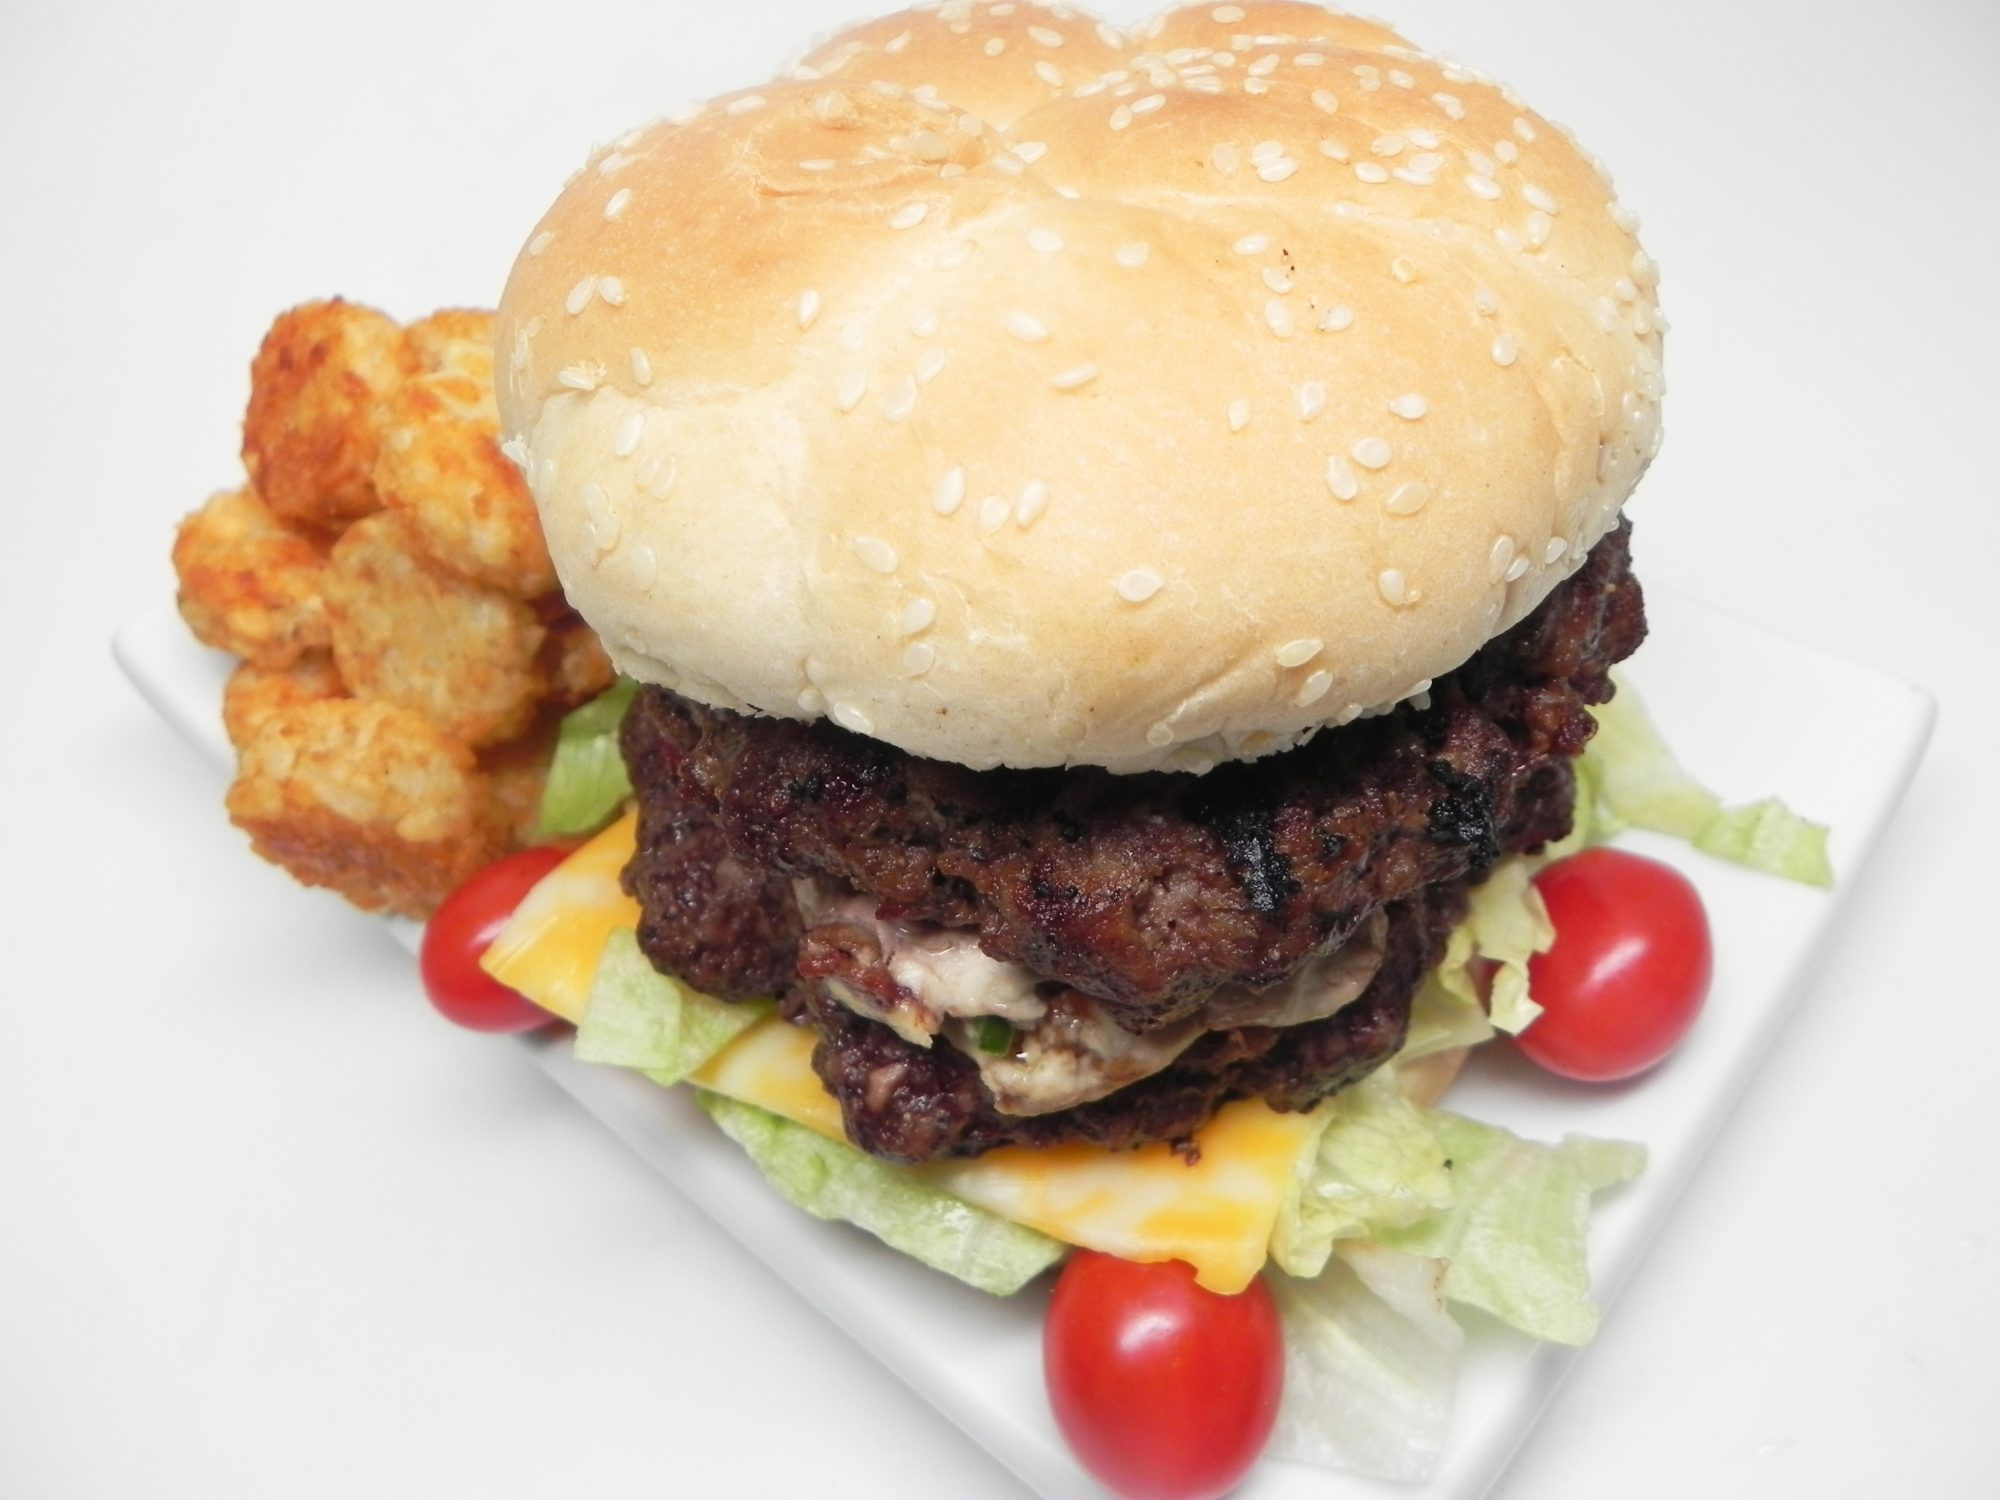 bacon and jalapeno cream cheese stuffed burger with cheese and lettuce